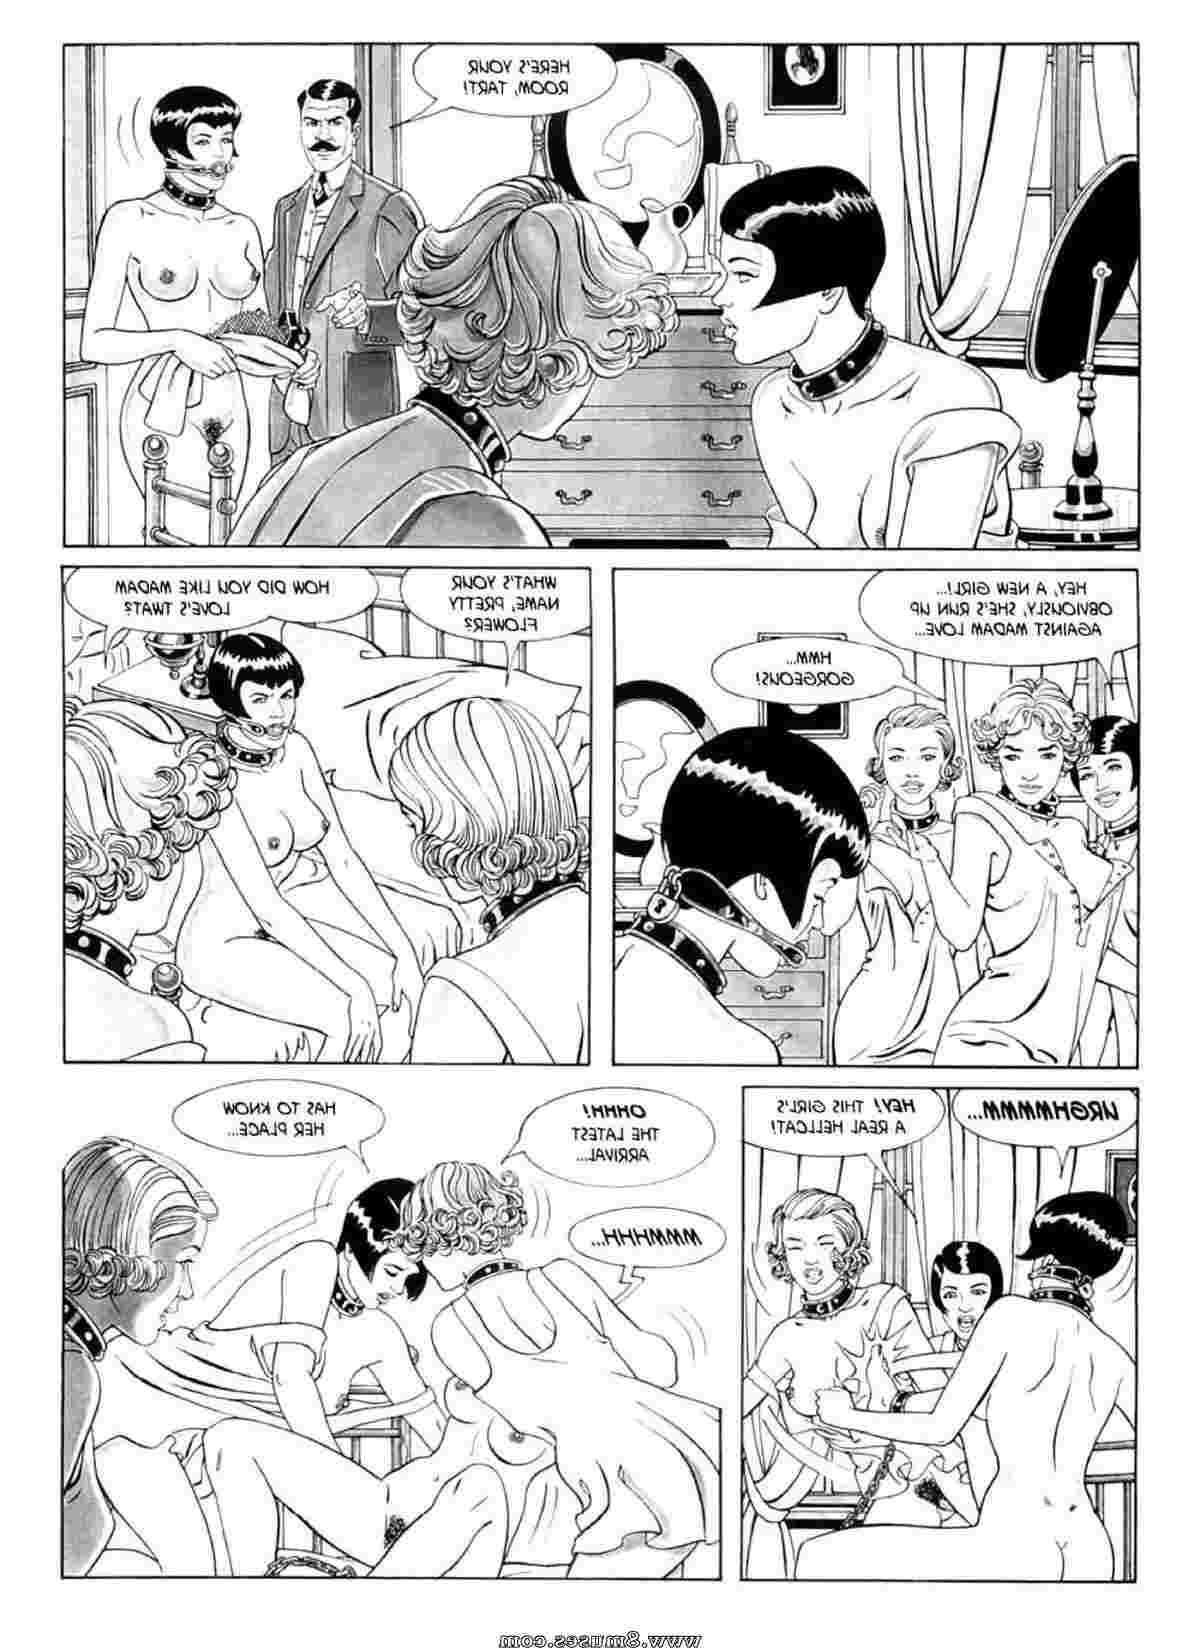 Stramaglia-Morale-Comics/Education-Anglaise Education_Anglaise__8muses_-_Sex_and_Porn_Comics_14.jpg